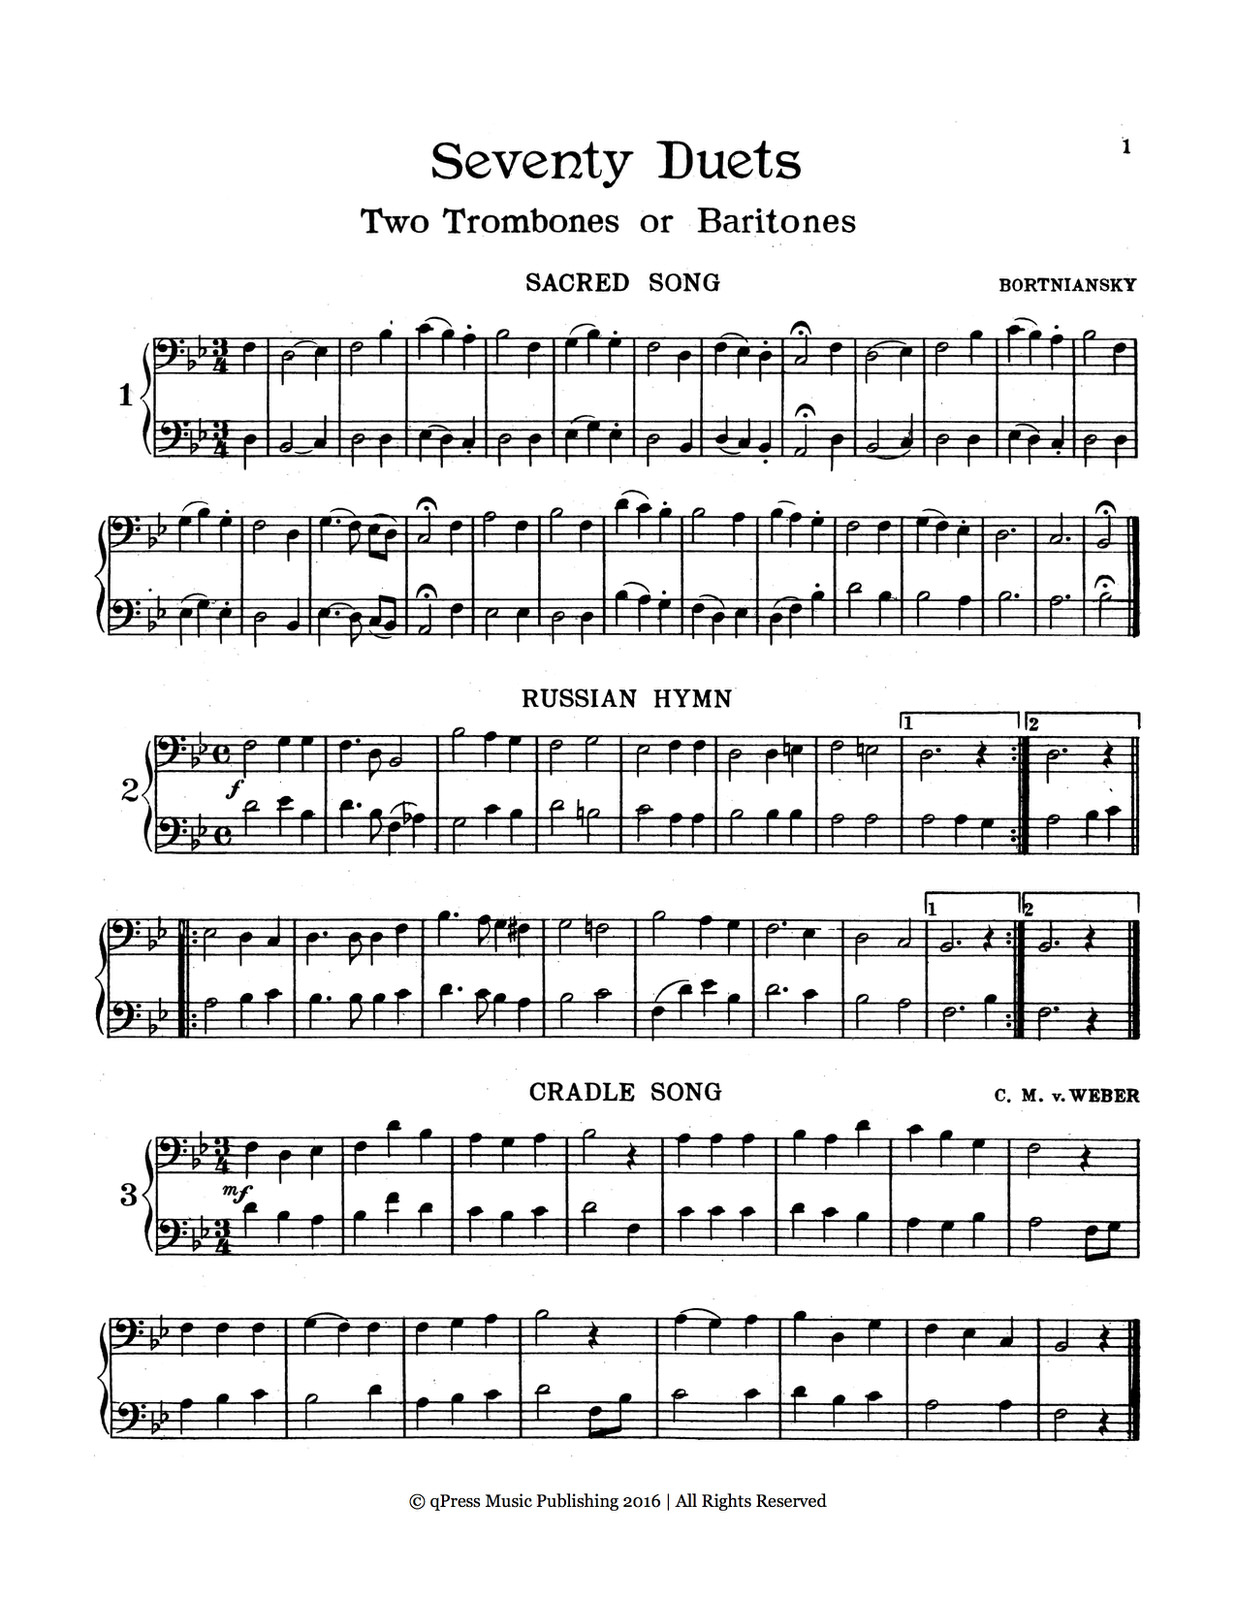 arban-eby-celebrated-duets-for-trombone-in-bass-clef-2